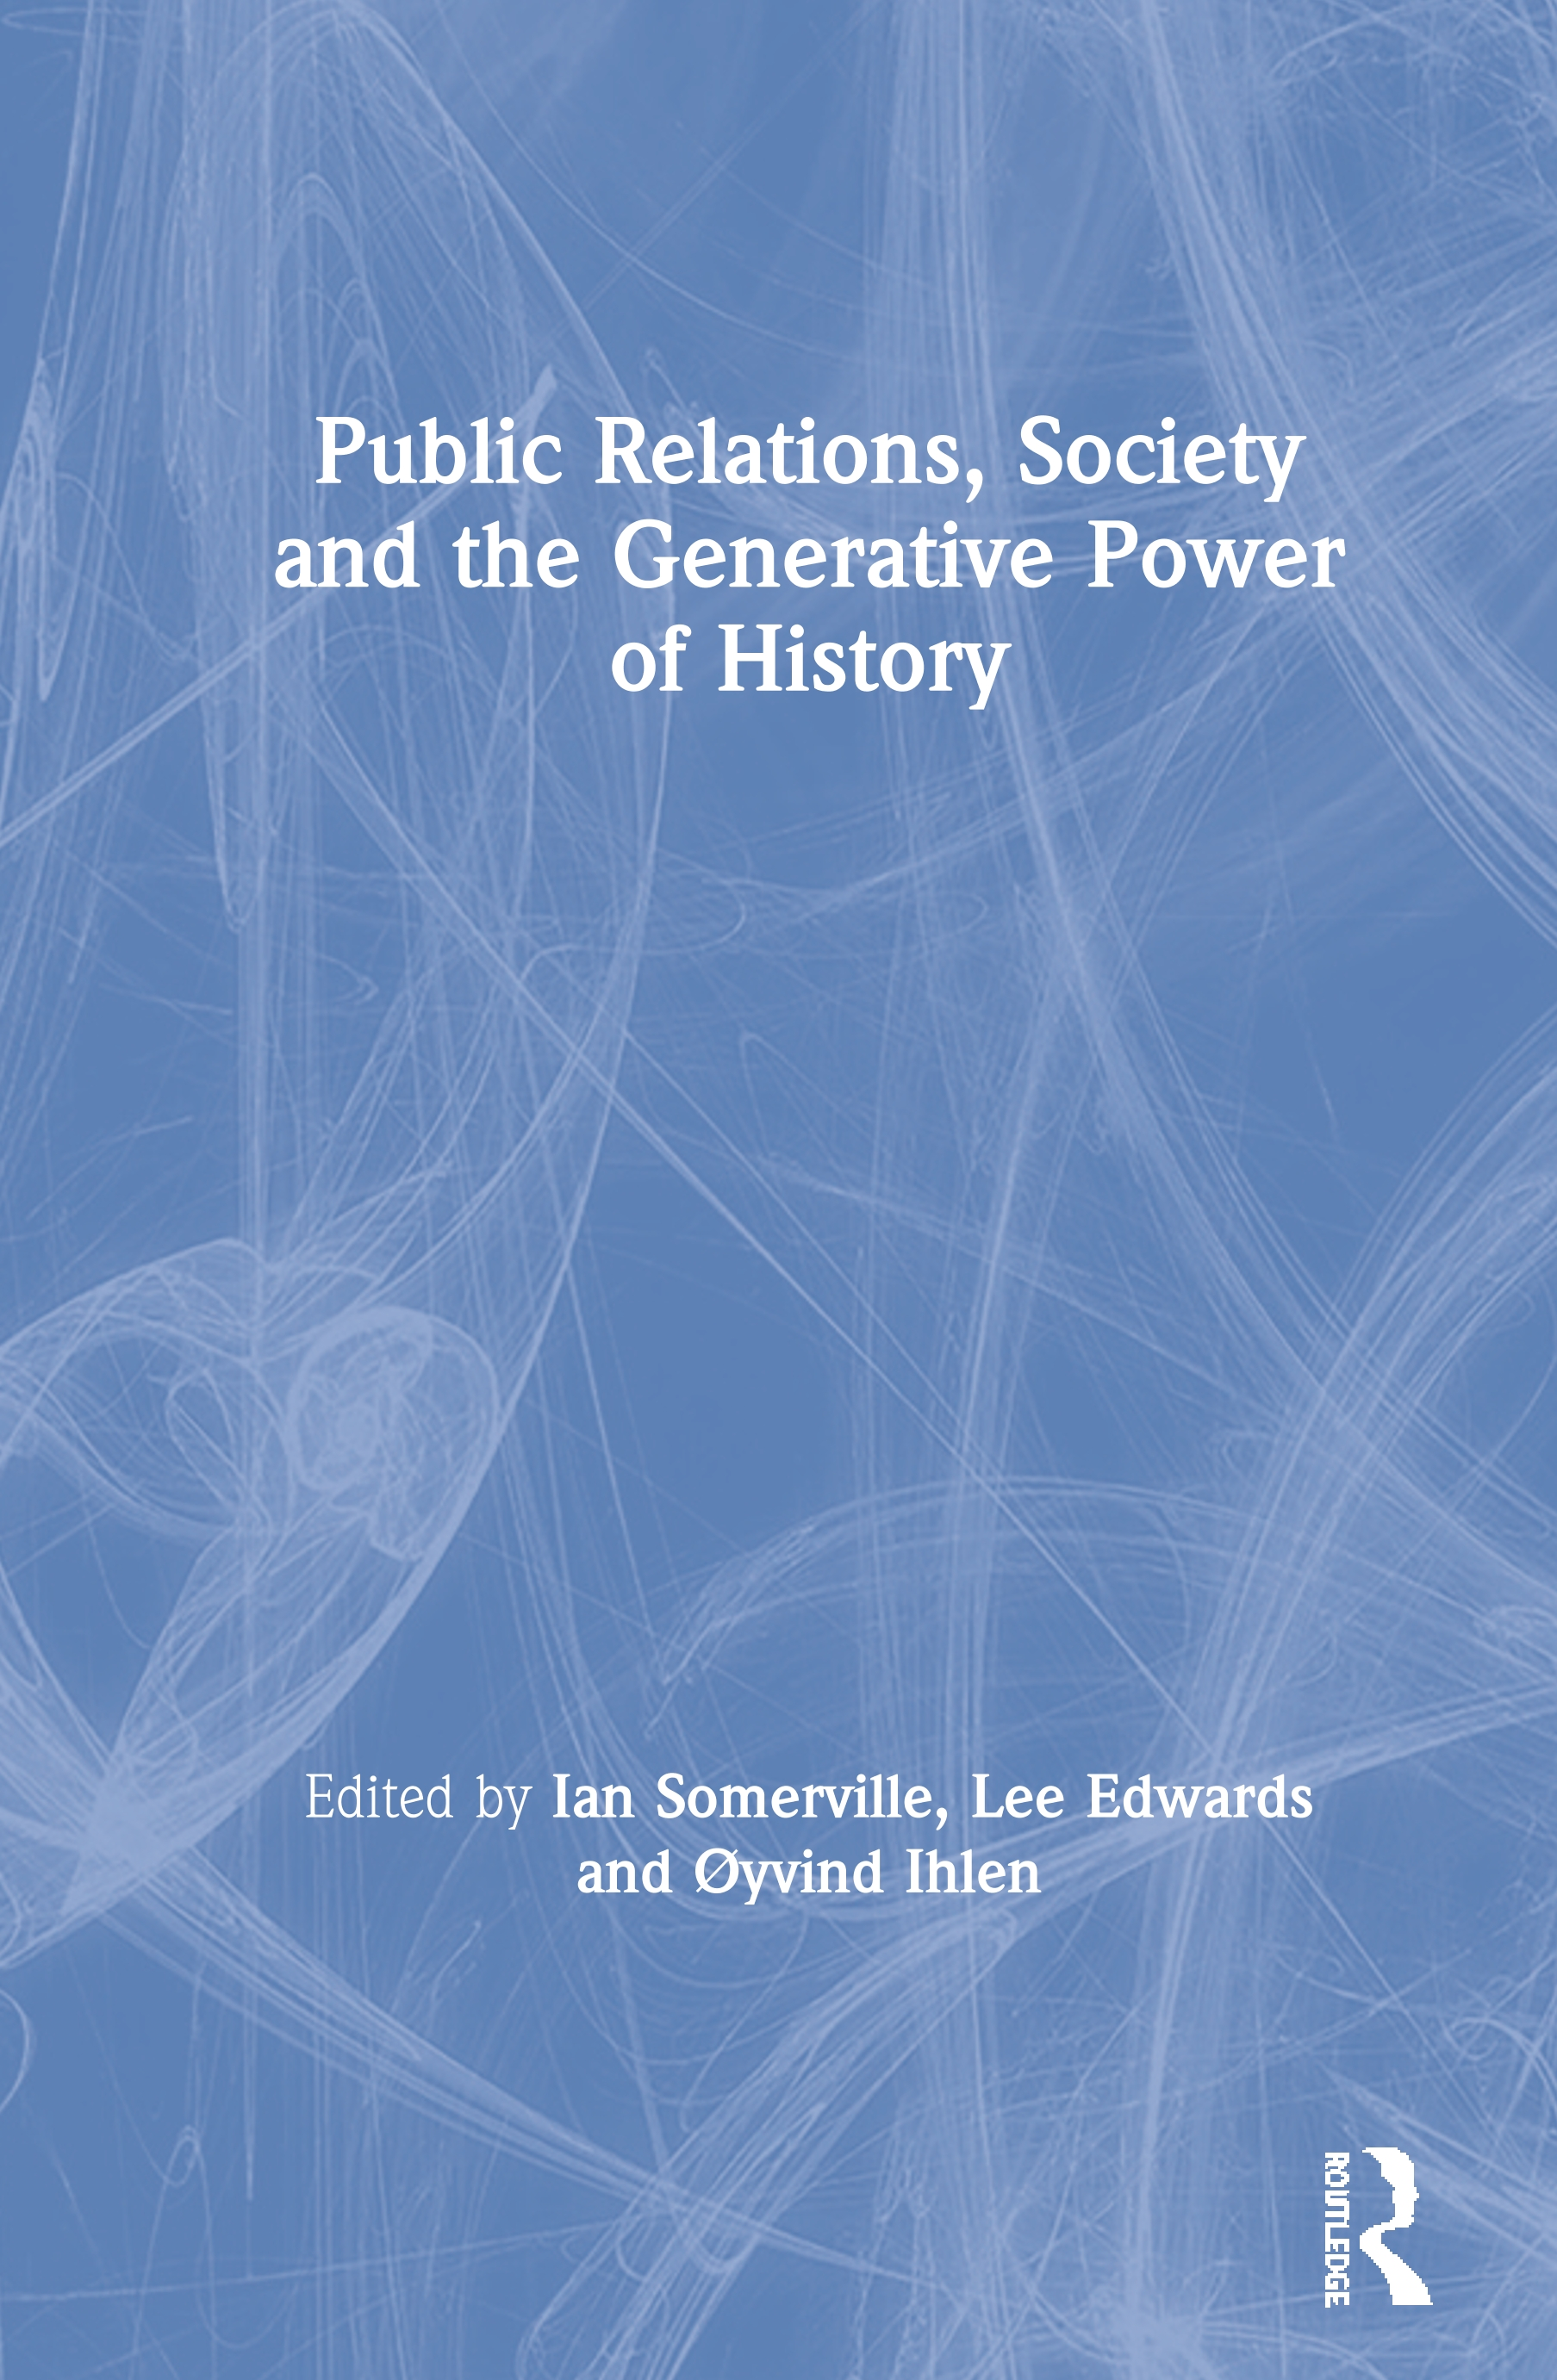 Public Relations, Society and the Generative Power of History book cover